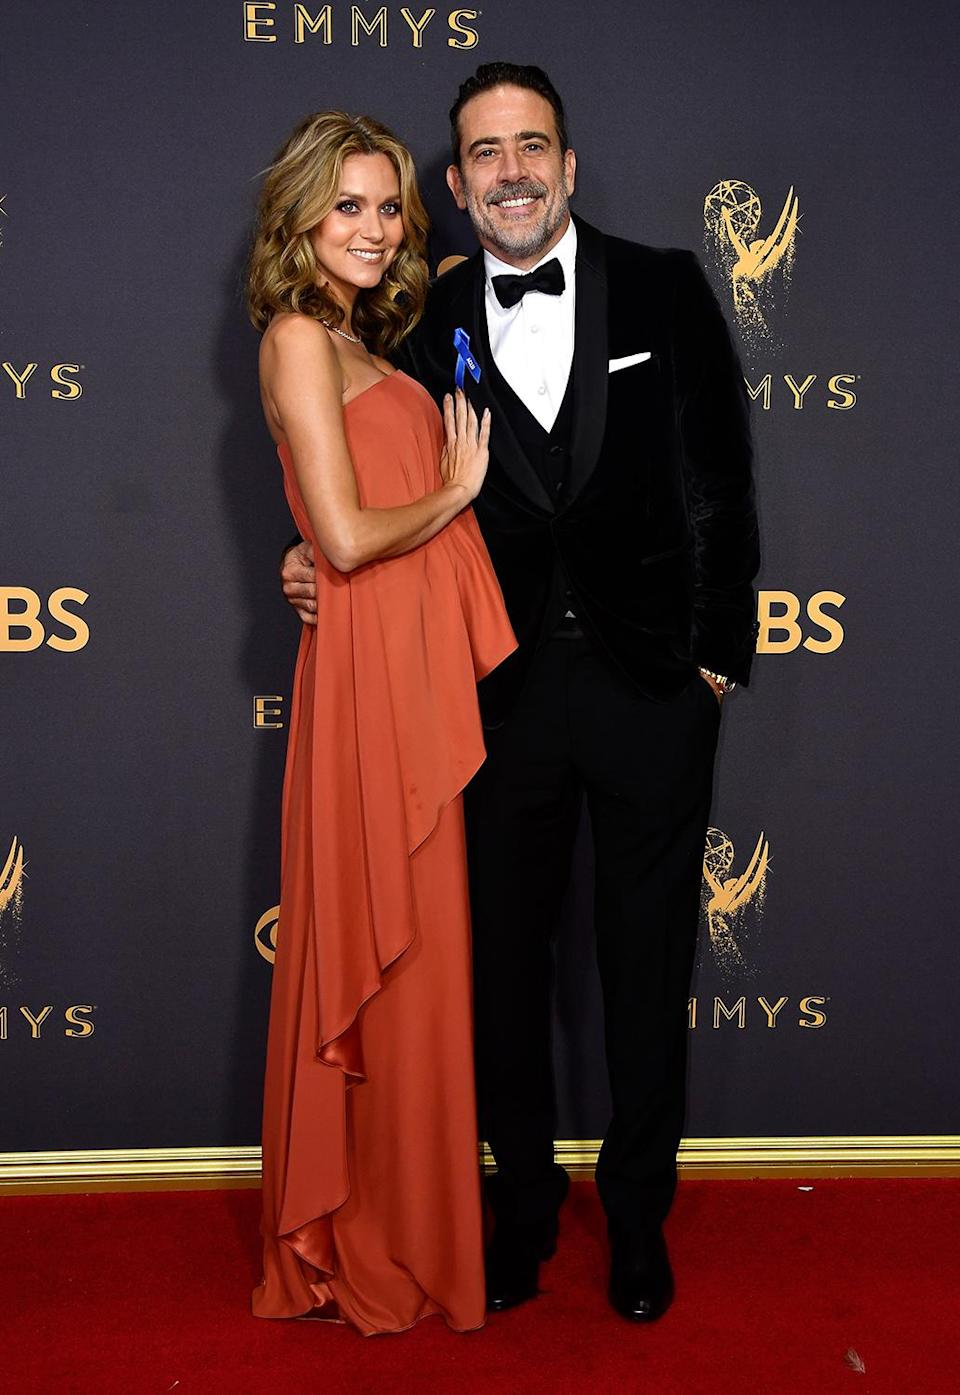 <p>Hilarie Burton and Jeffrey Dean Morgan attends the 69th Annual Primetime Emmy Awards on September 17, 2017. (Photo: Getty Images) </p>